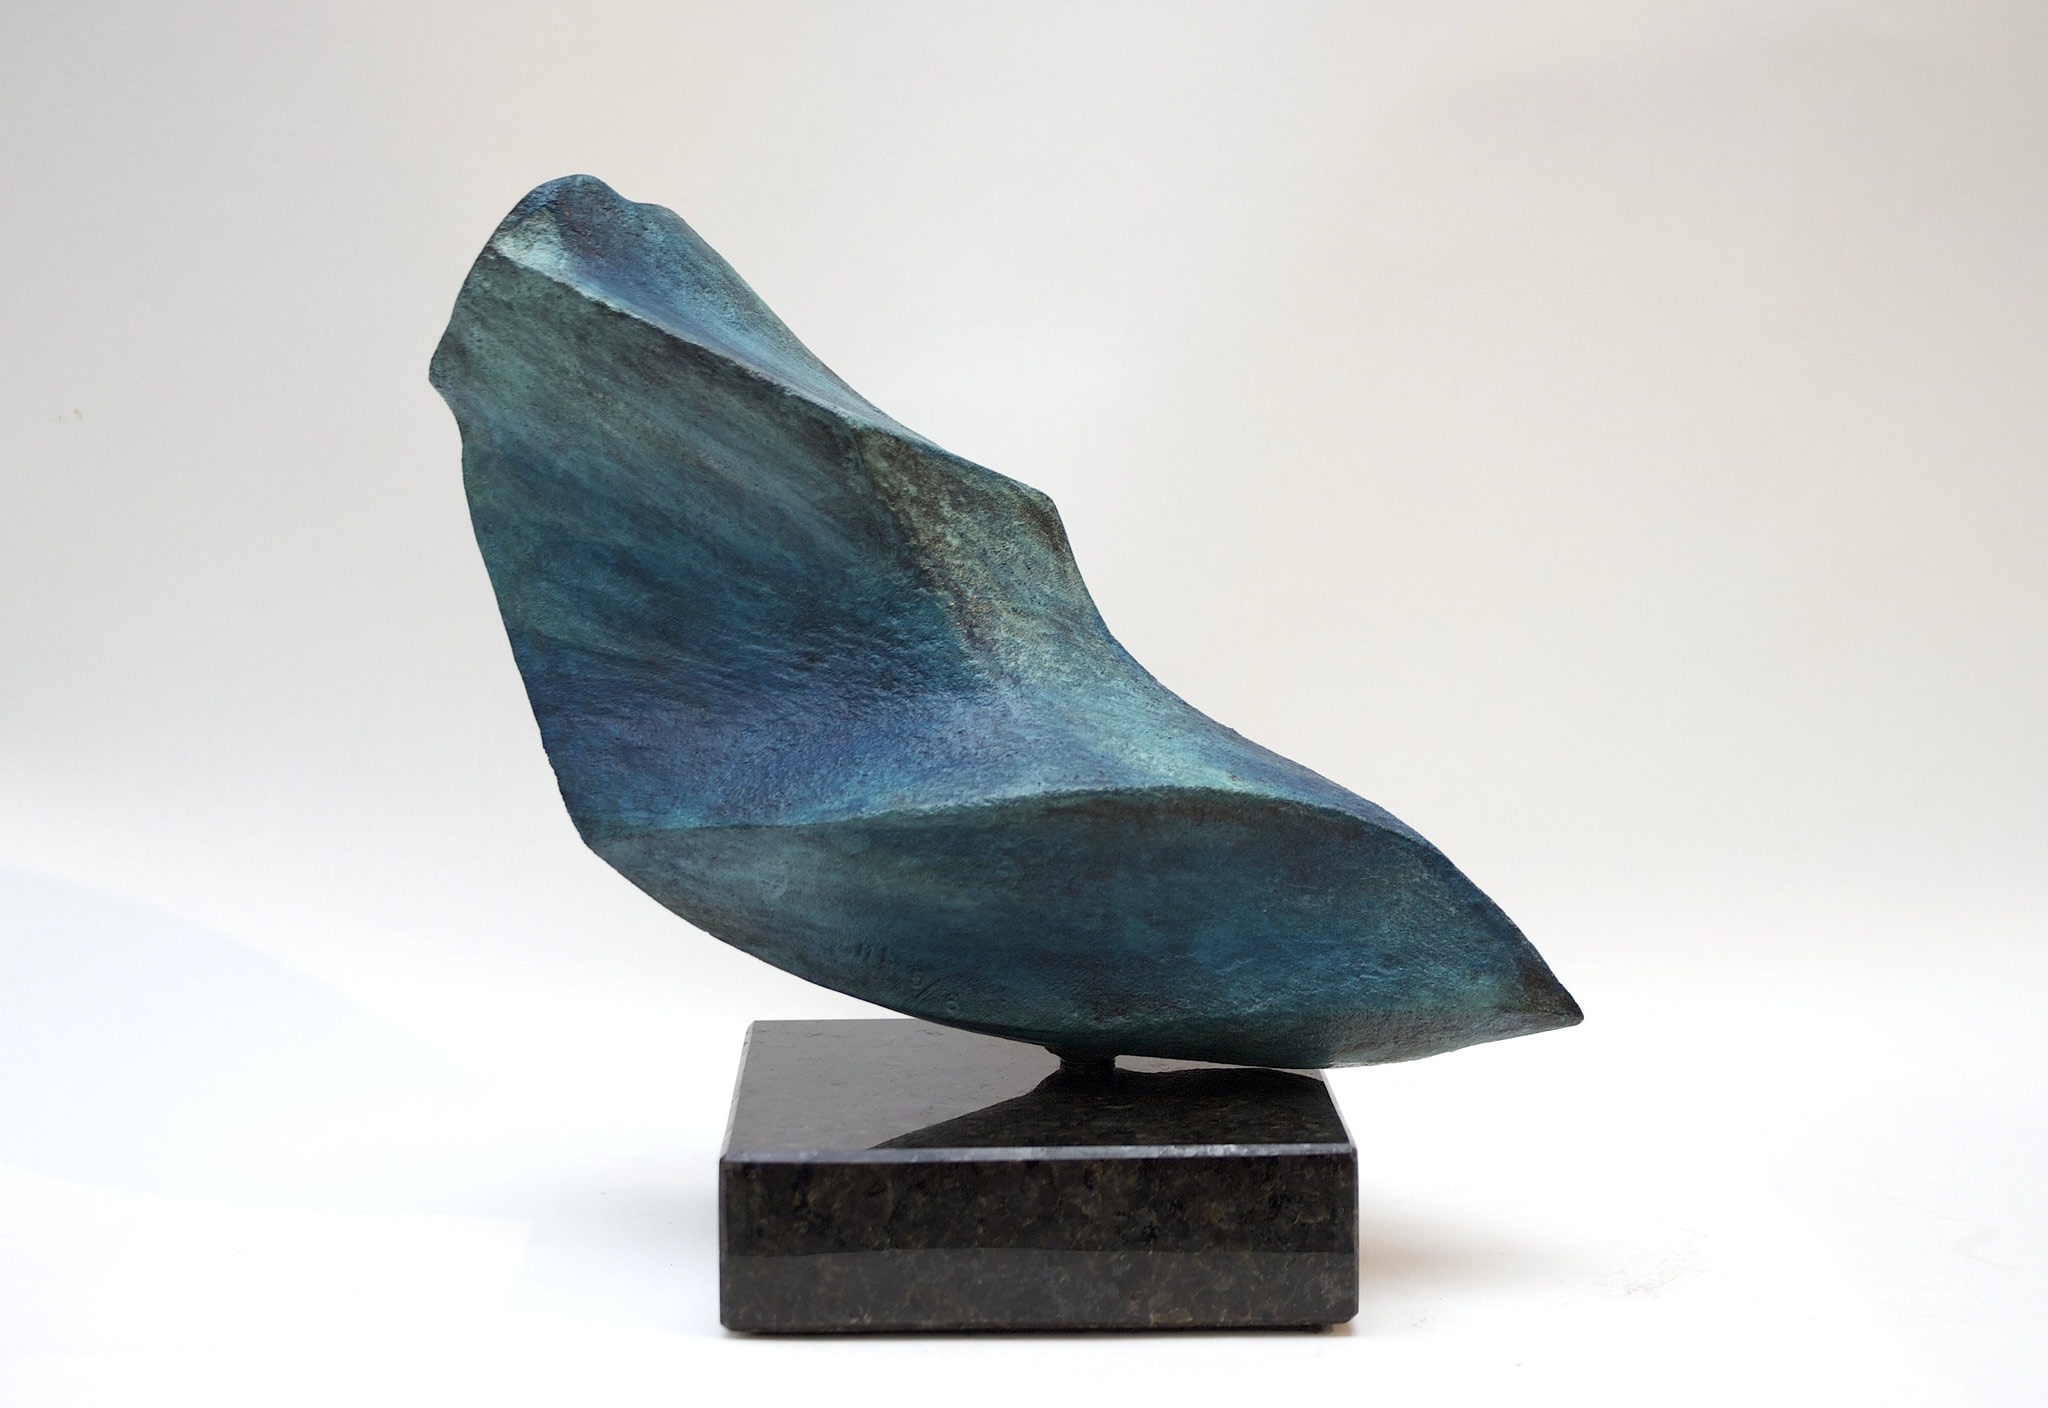 """<span class=""""link fancybox-details-link""""><a href=""""/artists/69-margaret-lovell-d.litt.-hon-frbs-rwa/works/3007-margaret-lovell-d.litt.-hon-frbs-rwa-marine-bird-2005/"""">View Detail Page</a></span><div class=""""artist""""><strong>Margaret Lovell D.Litt. Hon FRBS RWA</strong></div> b. 1939 <div class=""""title""""><em>Marine Bird</em>, 2005</div> <div class=""""signed_and_dated"""">signed and stamped by the artist '5/6'</div> <div class=""""medium"""">cast bronze (patinated) on granite base</div> <div class=""""dimensions"""">12 x 16 cm<br /> 4 3/4 x 6 1/4 in</div> <div class=""""edition_details"""">edition 5 of 6</div><div class=""""price"""">£3,450.00</div><div class=""""copyright_line"""">Own Art: £ 250 x 10 Months, 0% APR + deposit £ 950</div>"""